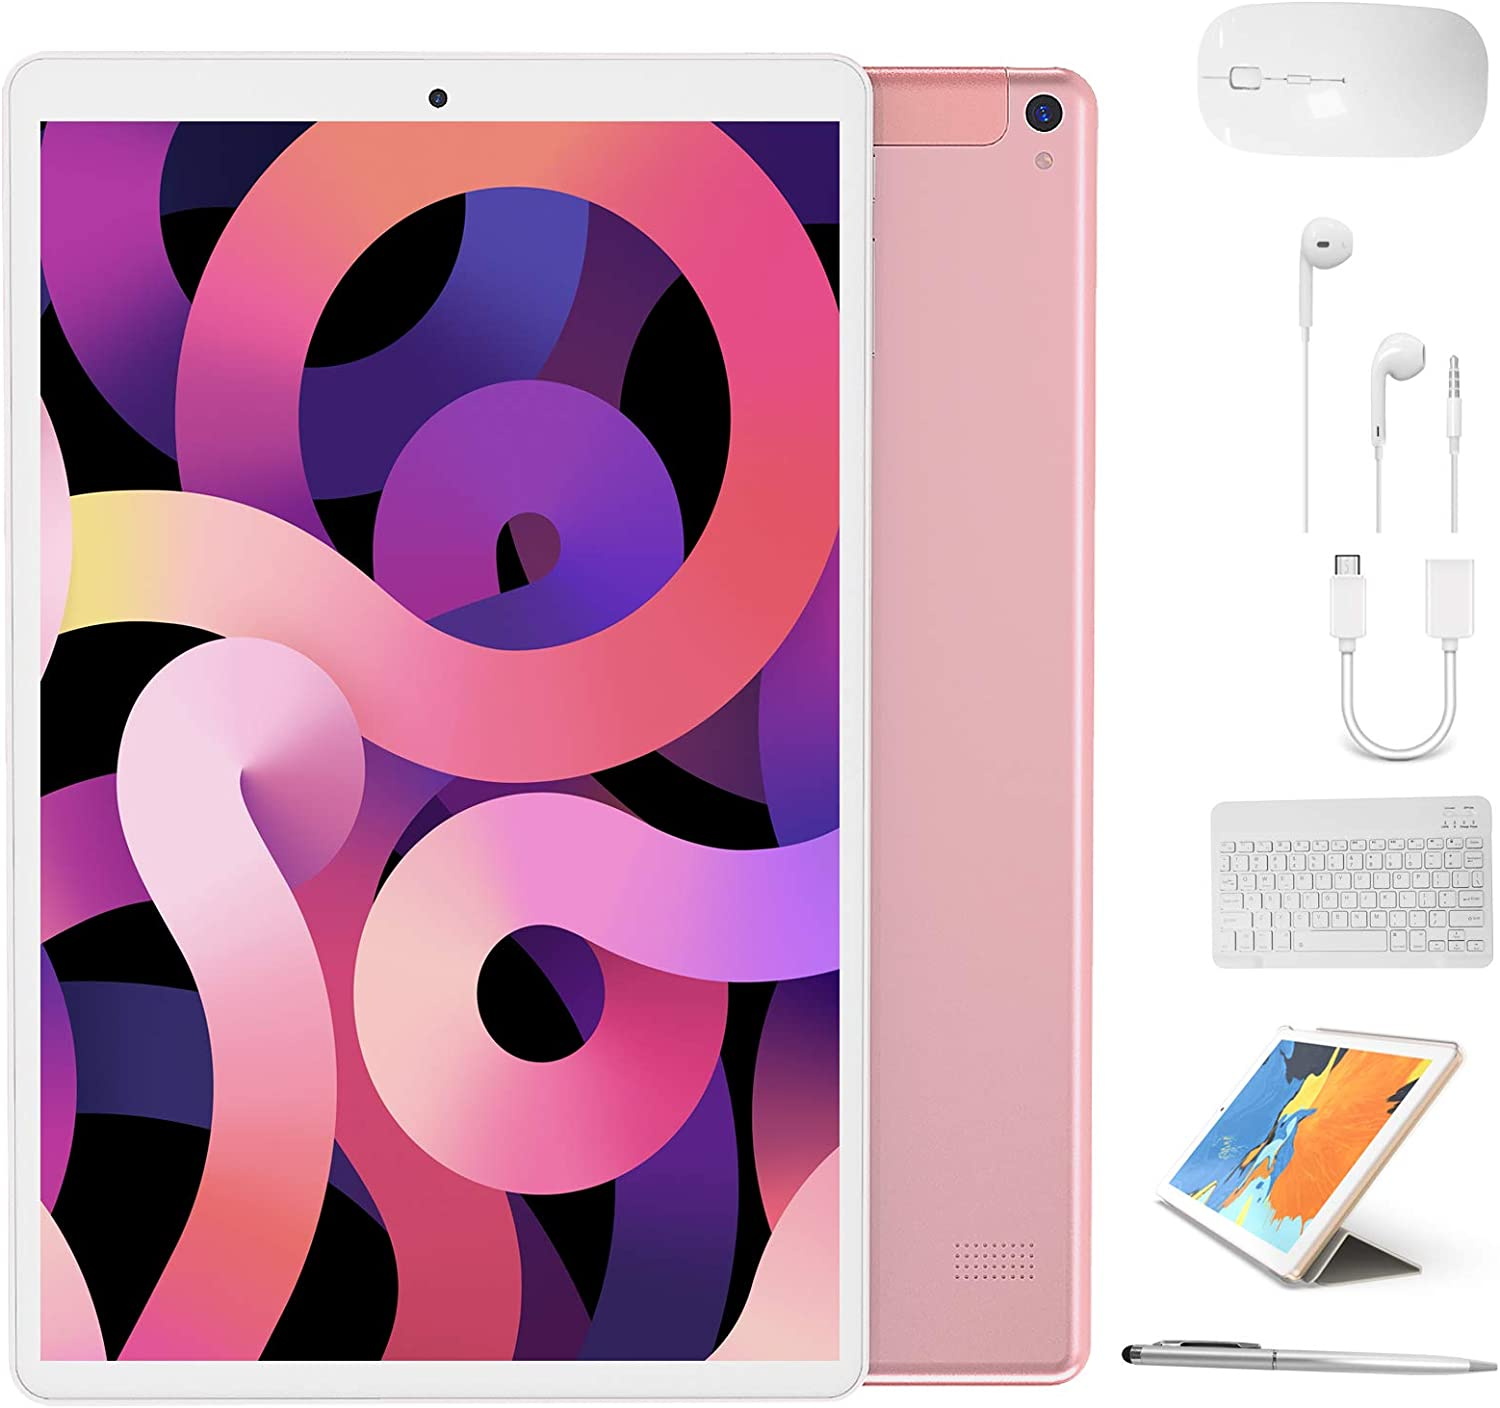 Tablet 10 inch, High Performance 2 in 1 Android 9.0 Tablets with Keyboard Case & Mouse, 3GB RAM 64GB Storage, Quad Core, Dual Sim Card, 4G WiFi, 8MP Camera, 8000 mAh, FM, GPS, Bluetooth - Pink